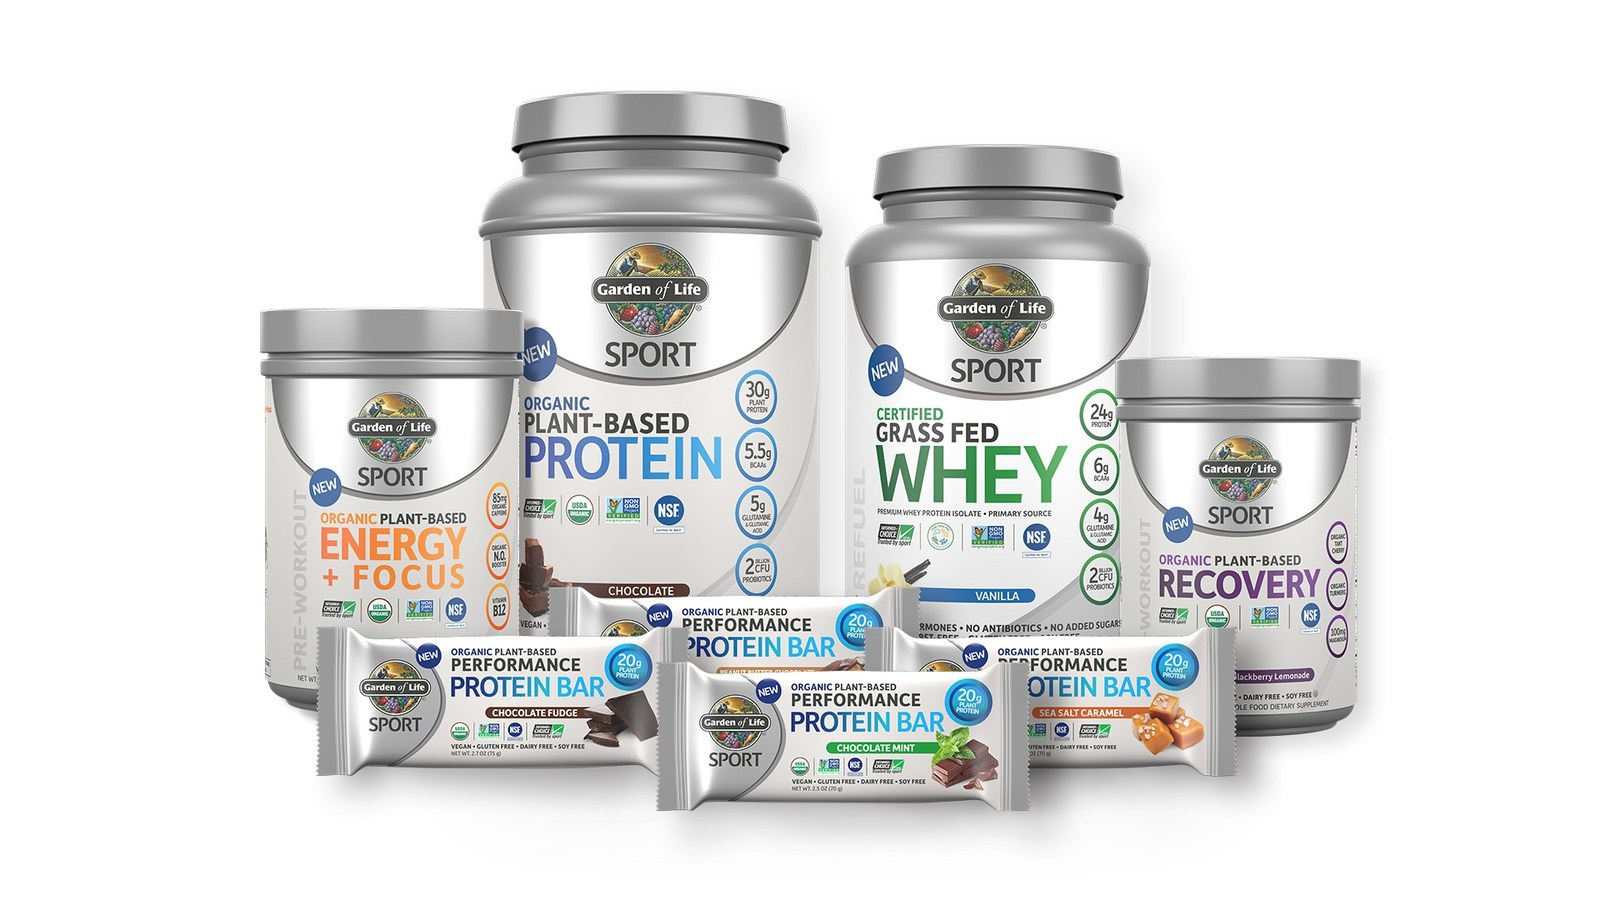 Garden of life enters sports nutrition arena with launch Garden of life sport plant based protein